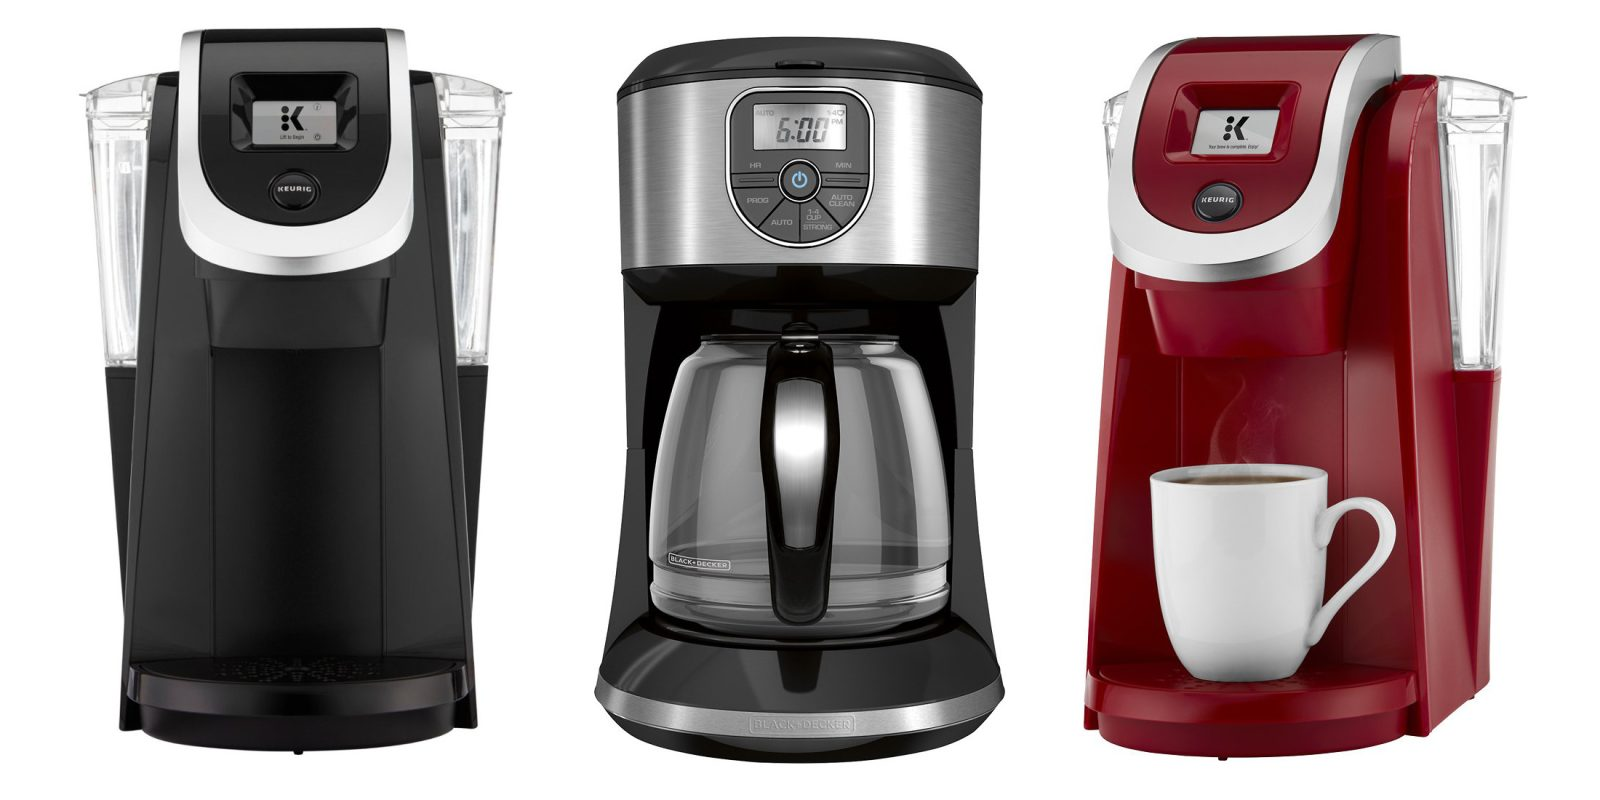 Best Buy coffee maker sale up to 50% off: Black & Decker ...